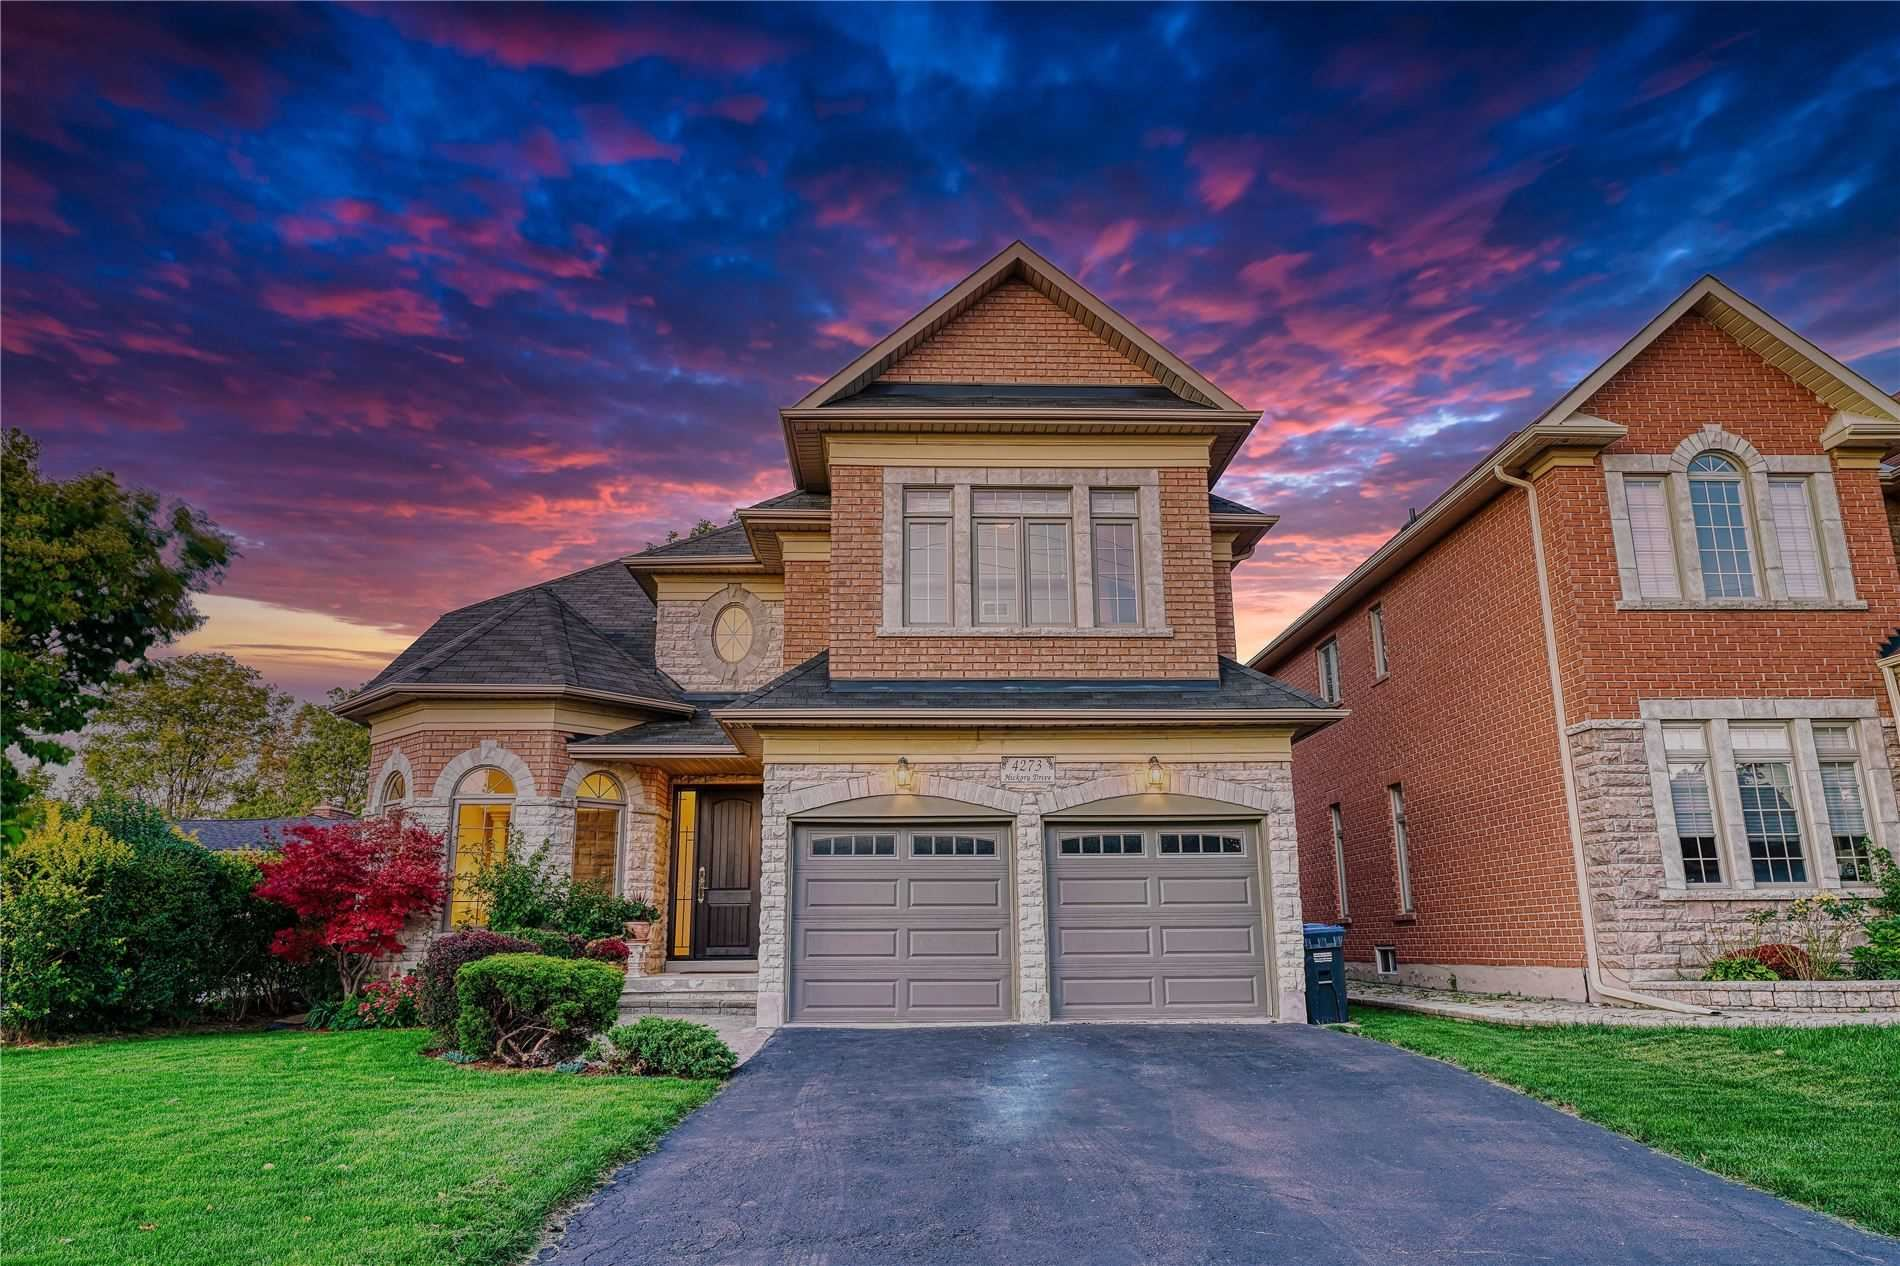 4273 Hickory Dr, Mississauga, ON L4W1L3 - MLS#: W5395208